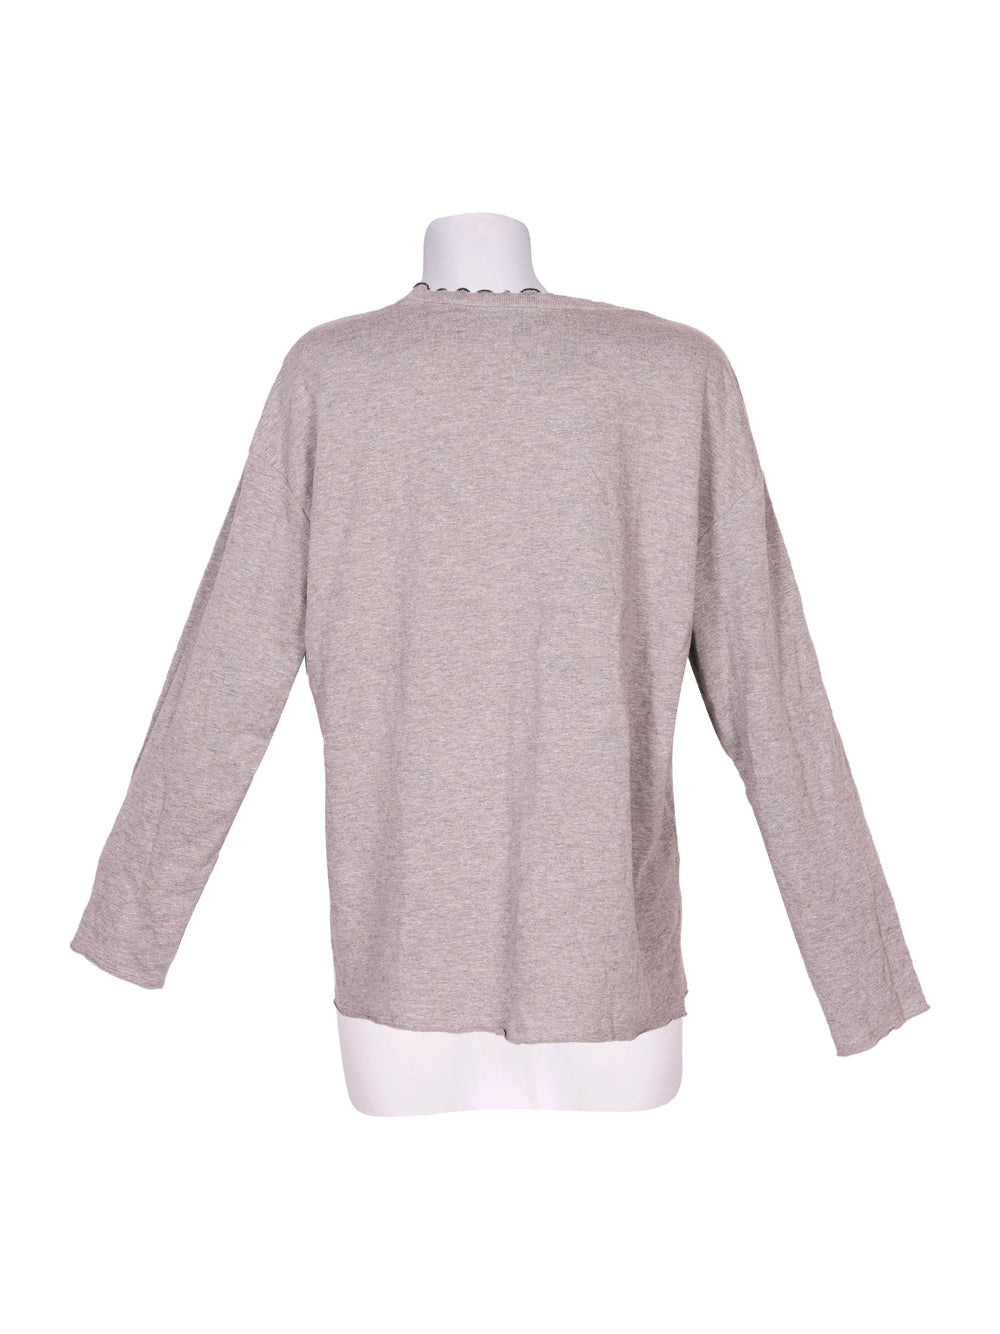 Back photo of Preloved Trf-Trafaluc (Zara) Grey Woman's long sleeved shirt - size 12/L